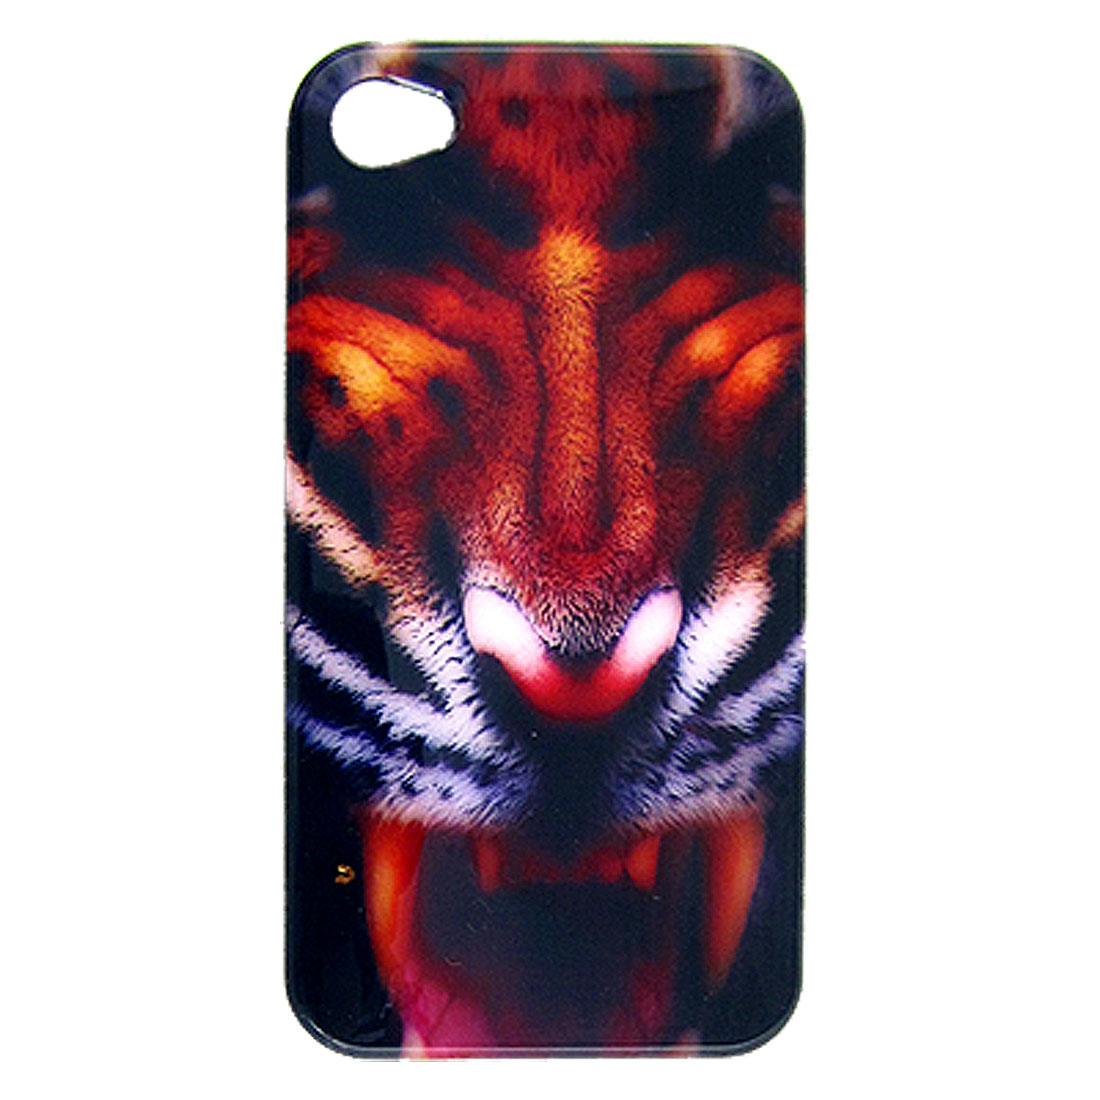 Tiger Head Print Hard Plastic Smooth Back Cover for iPhone 4 4G